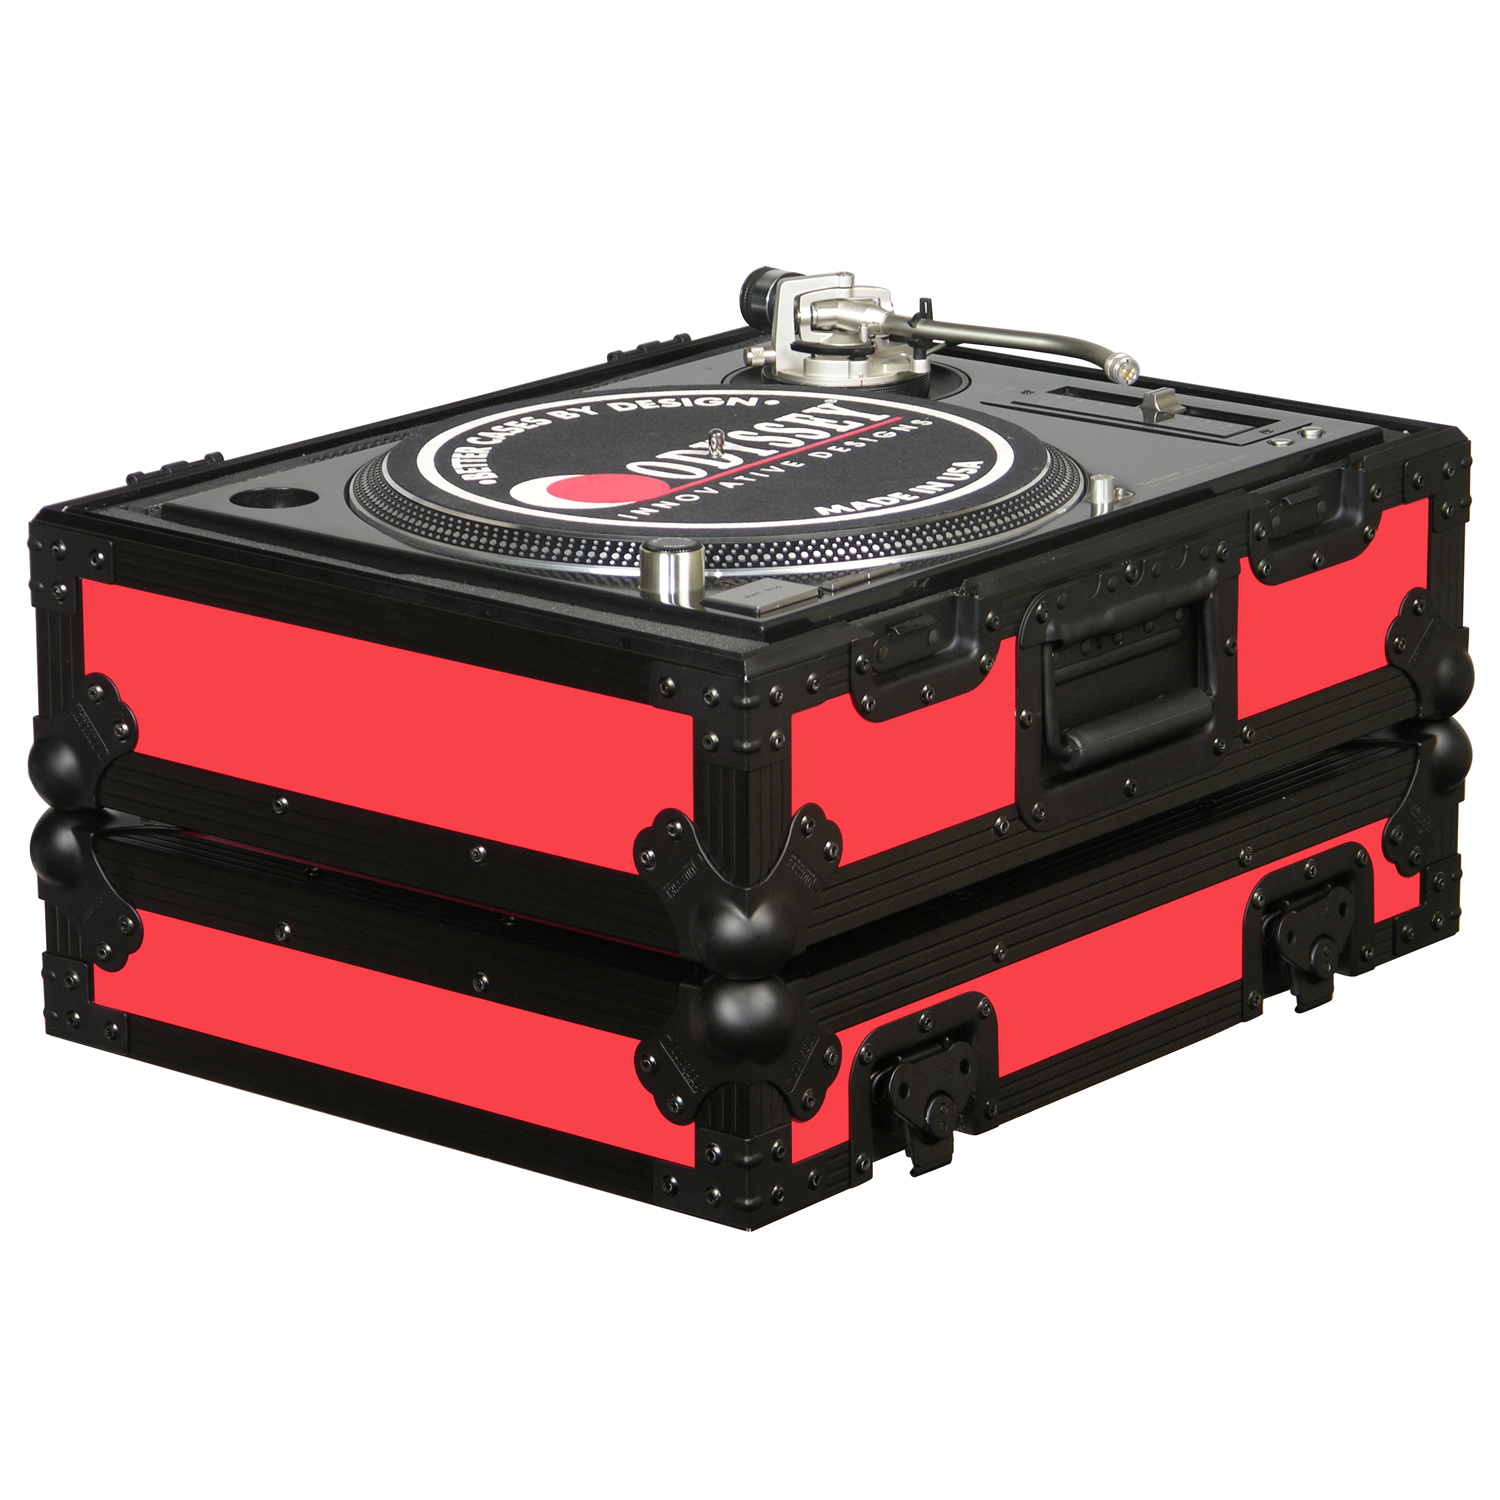 Red Universal Turntable Case